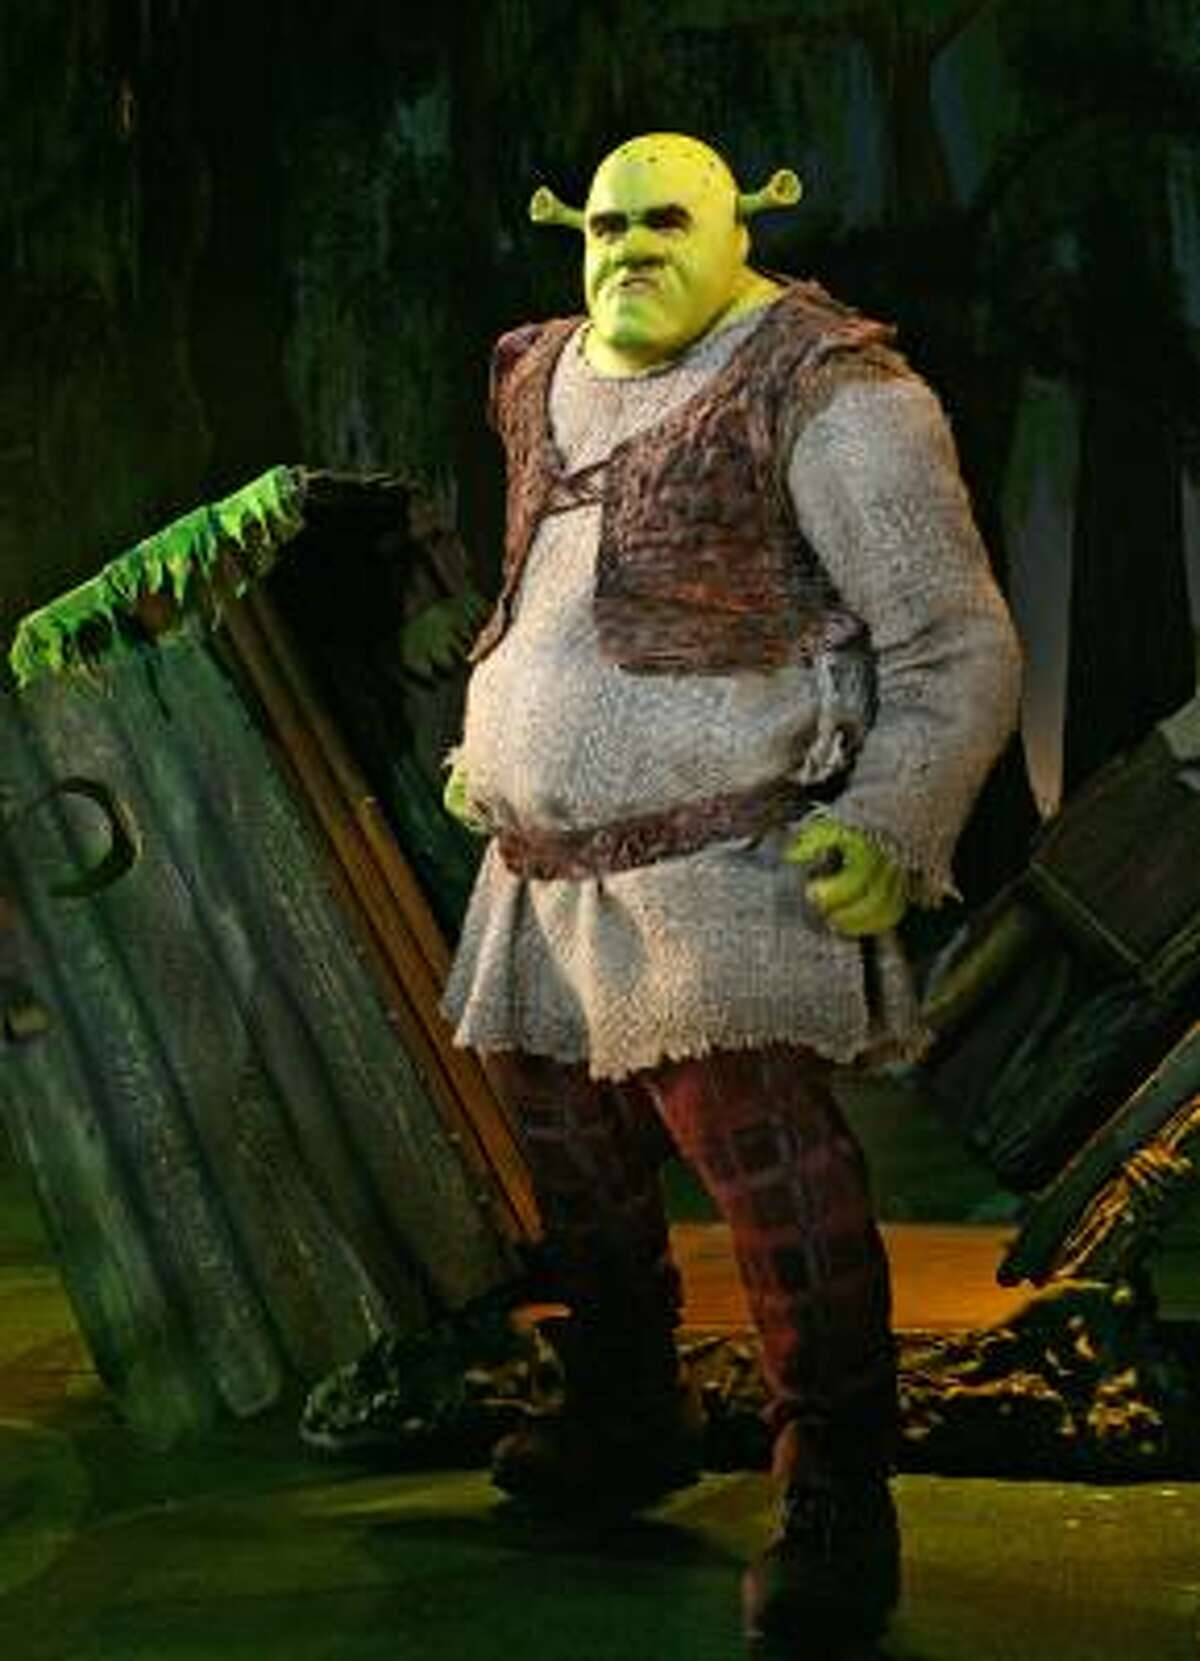 In this image released by Boneau/Bryan-Brown, Brian d'Arcy James is shown as the title character in